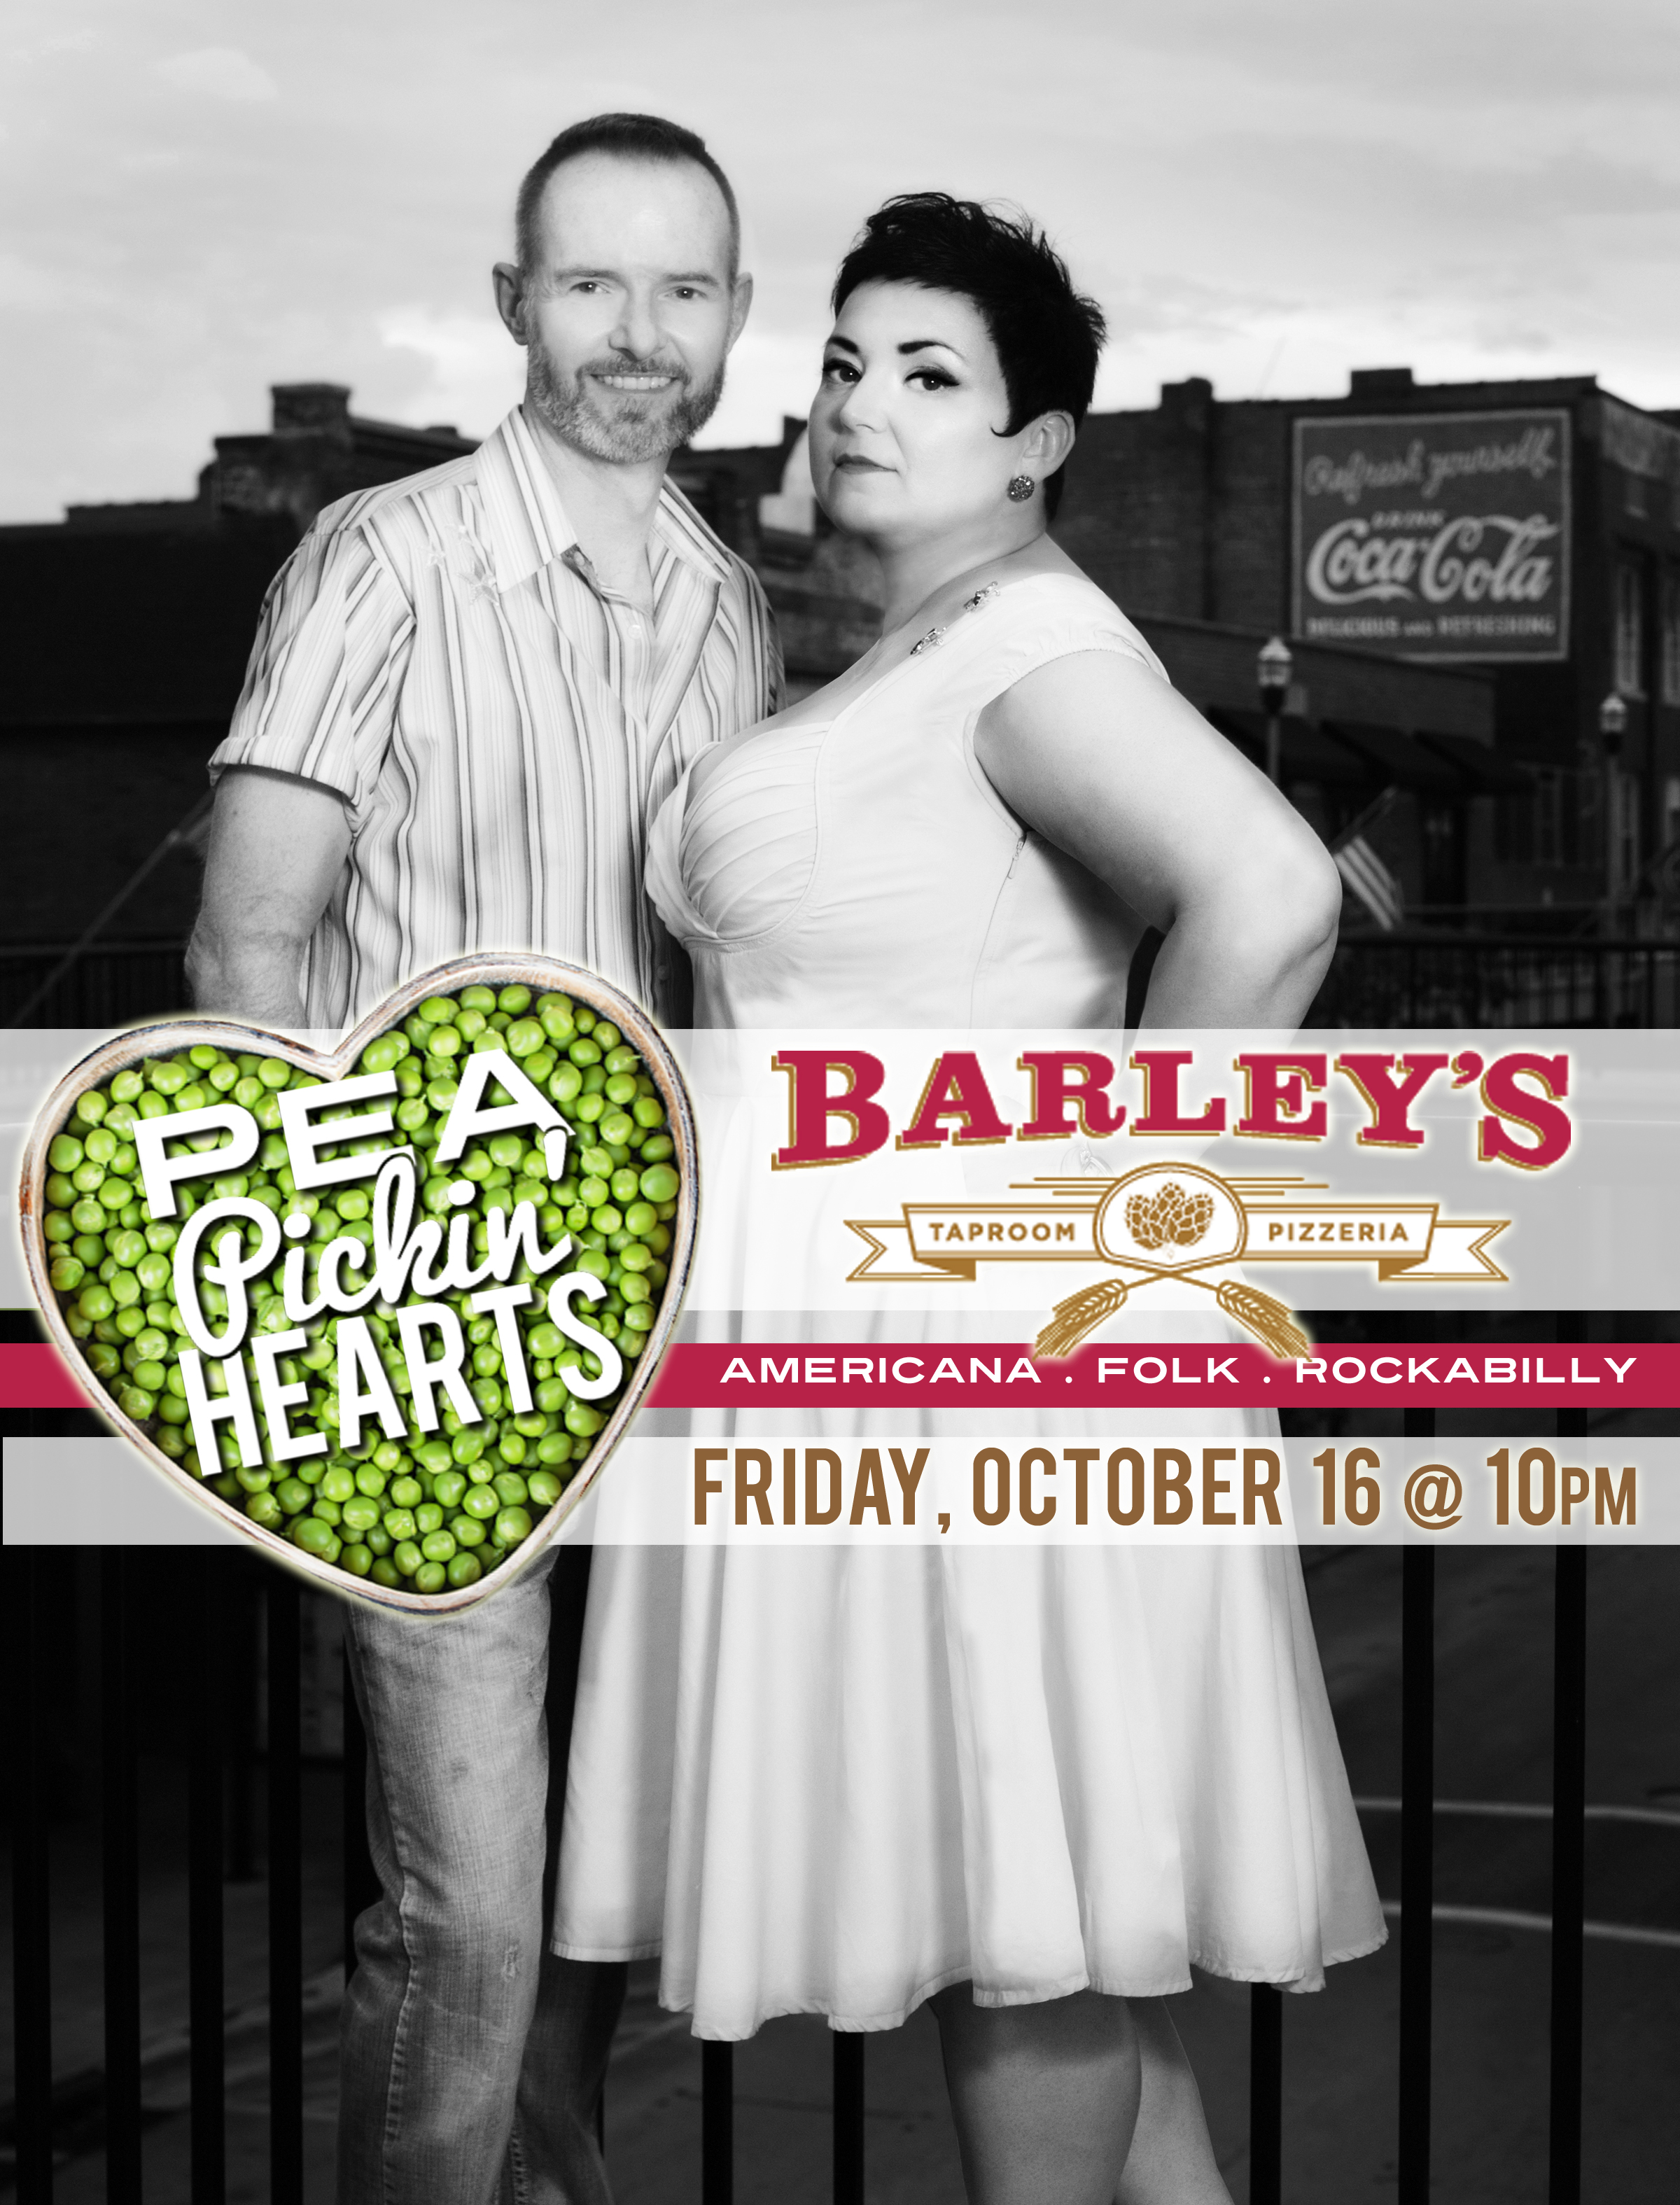 Hear the Pea Pickin' Hearts at Barley's Listening Room in Maryville, TN!